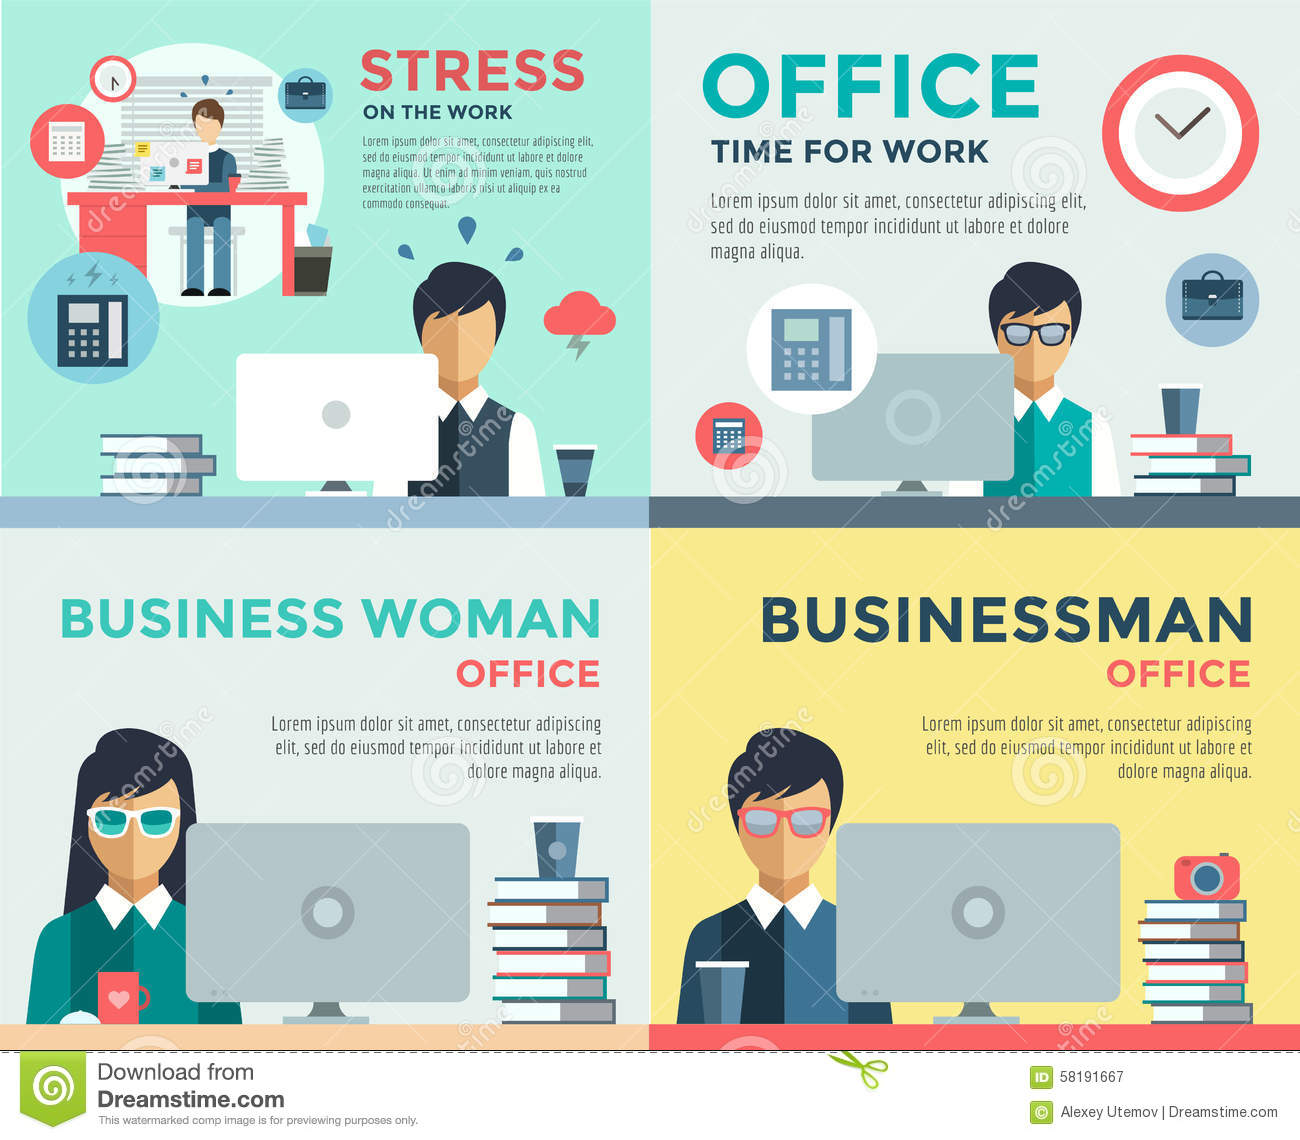 new job search and stress work infographic stock vector image new job search and stress work infographic